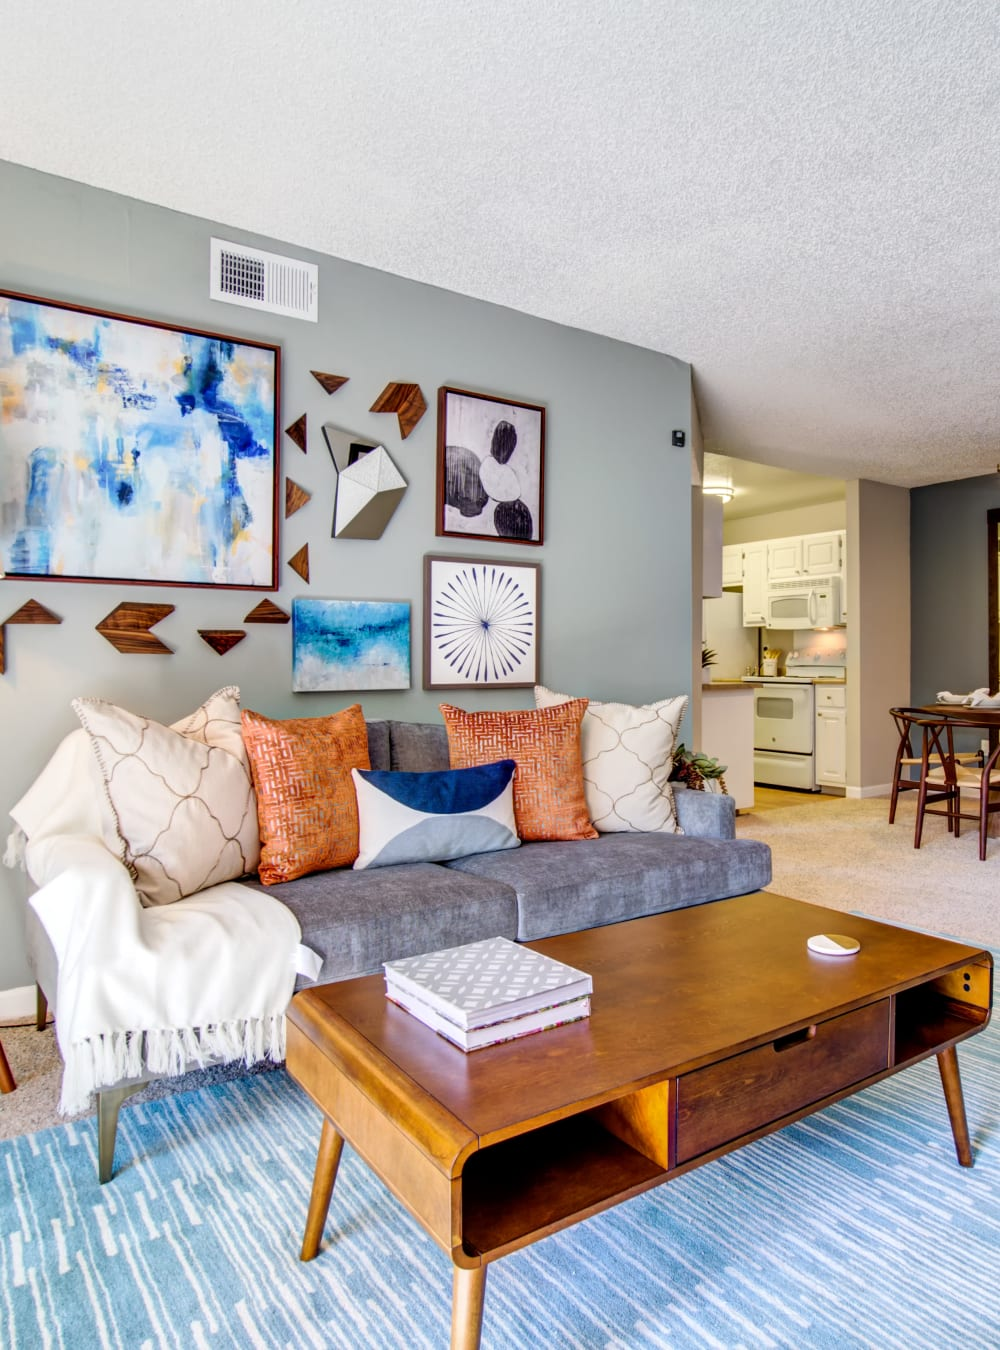 Retro-modern furnishings and an accent wall in a model home's living area at Waterstone Fremont in Fremont, California